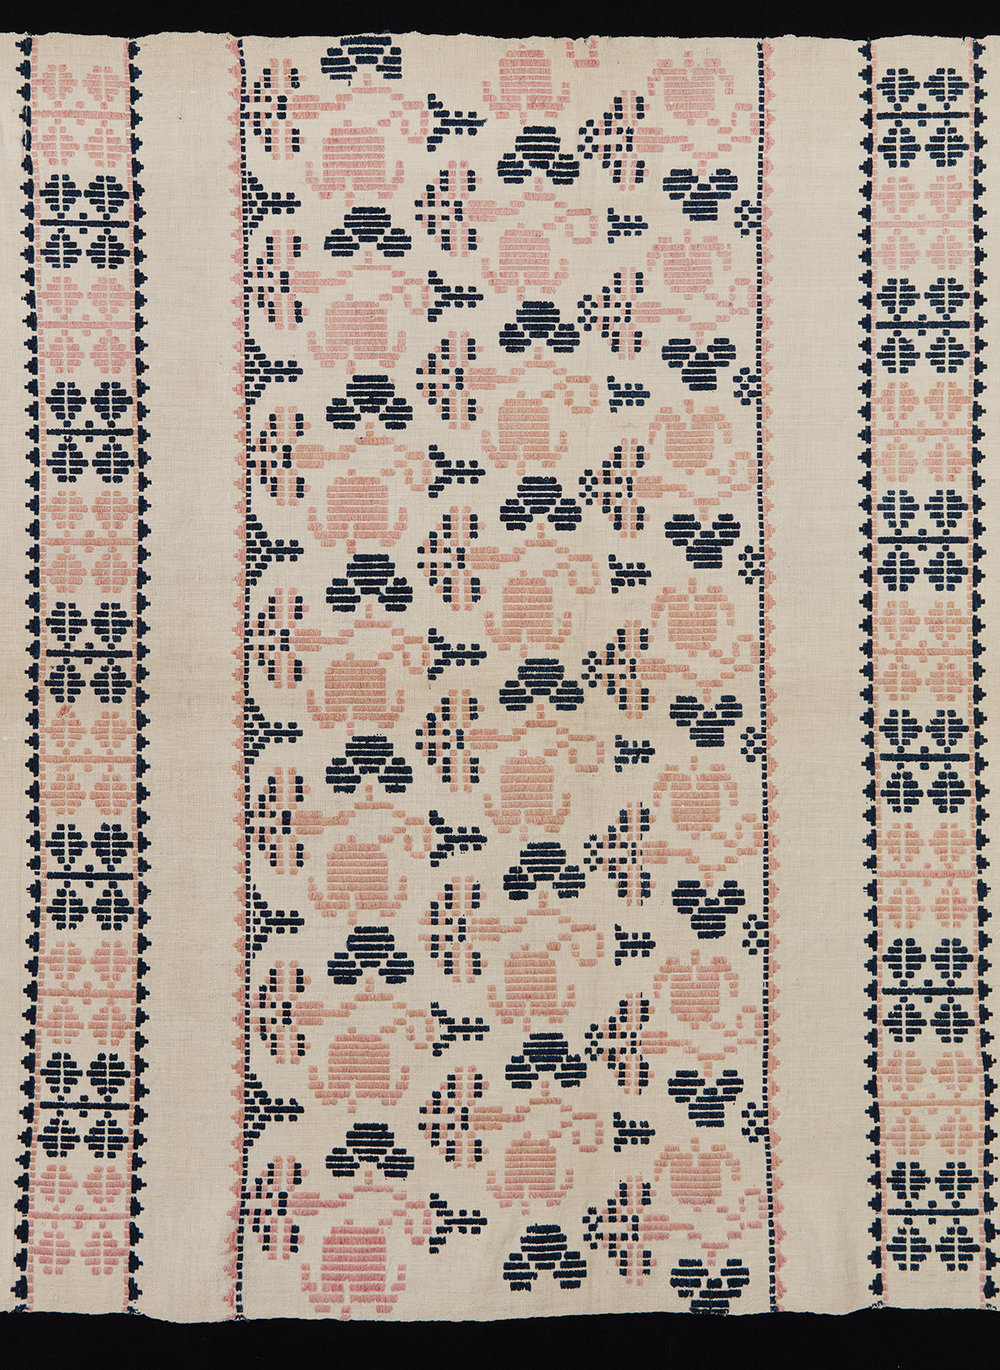 Inspiration textile (Sweden, 19th century) for  Ingrid  fabric on the far right cushion.